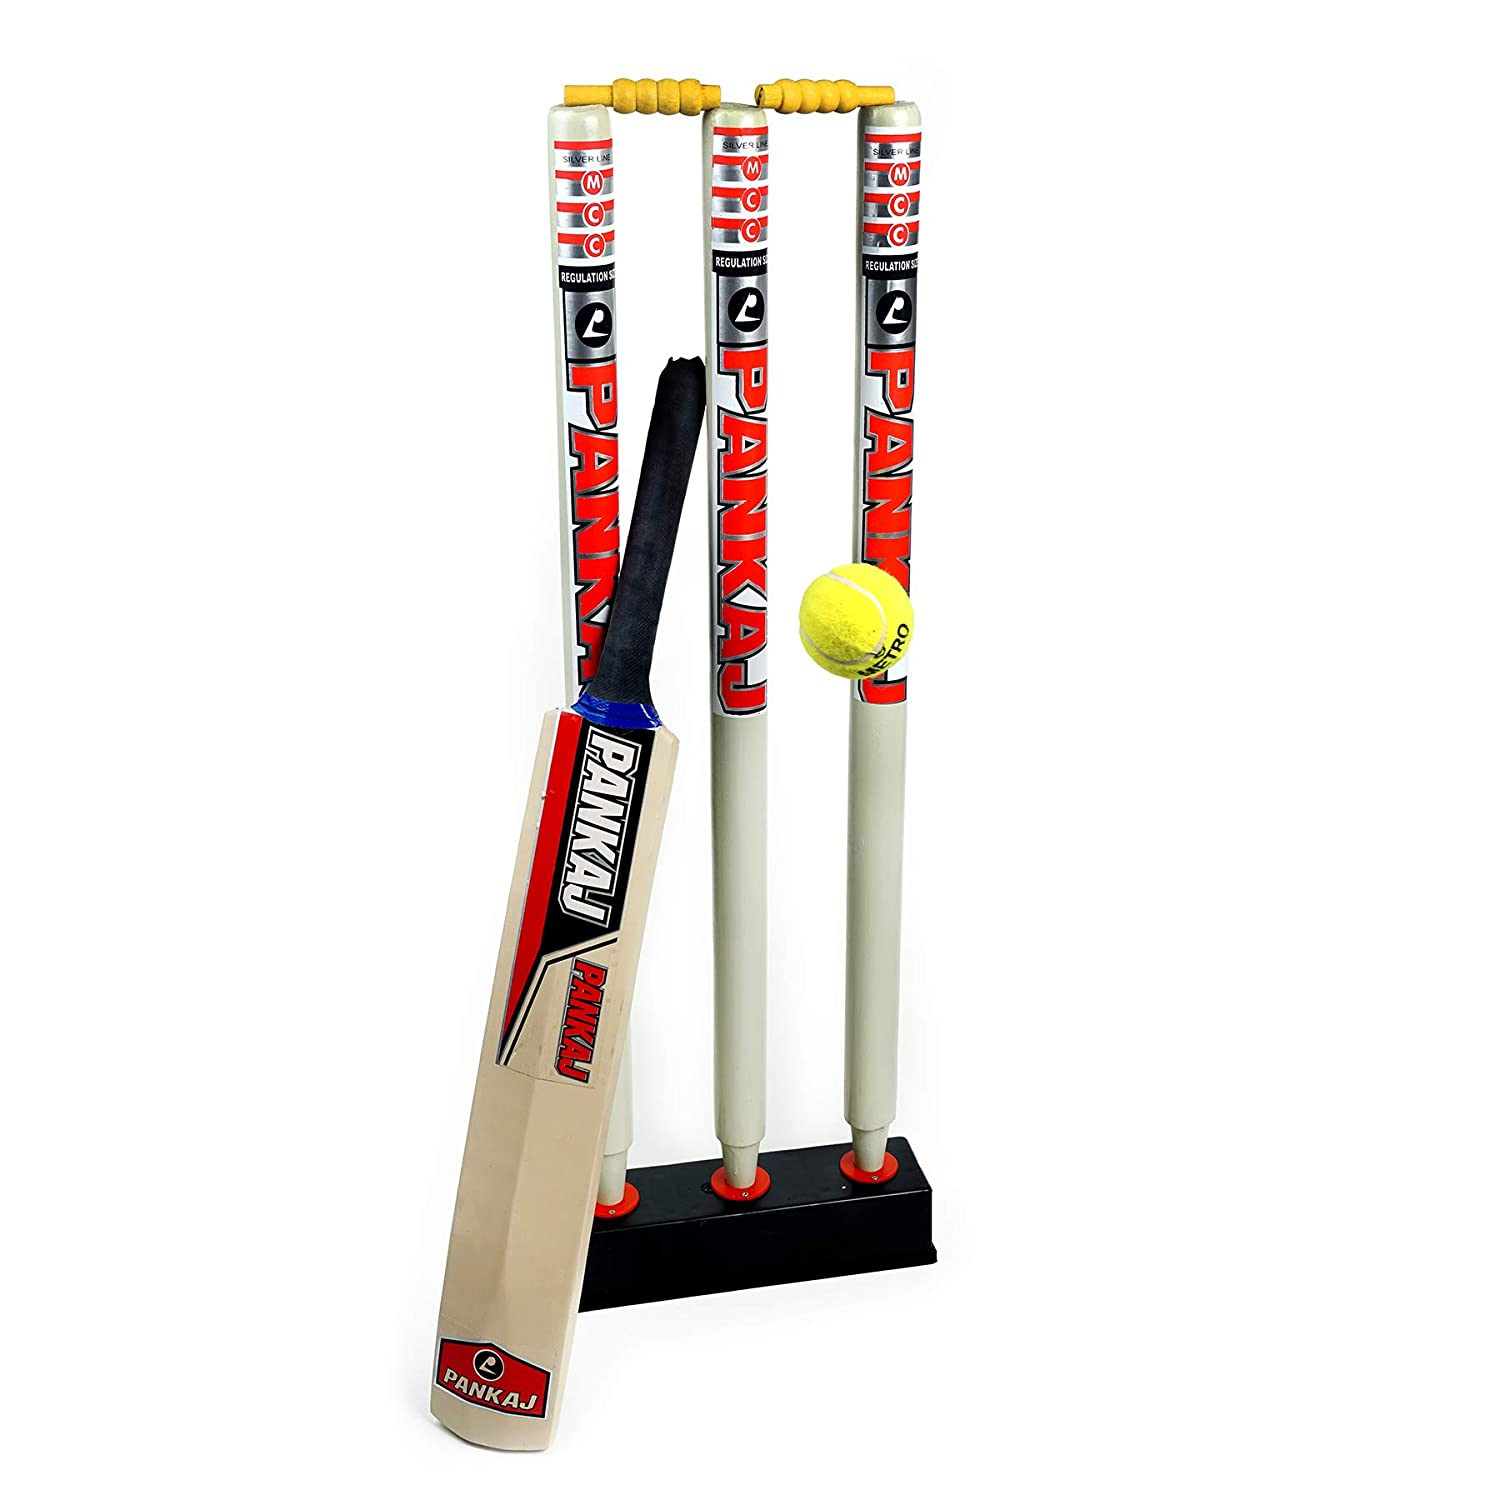 Cricket Stump Set - Best Quality